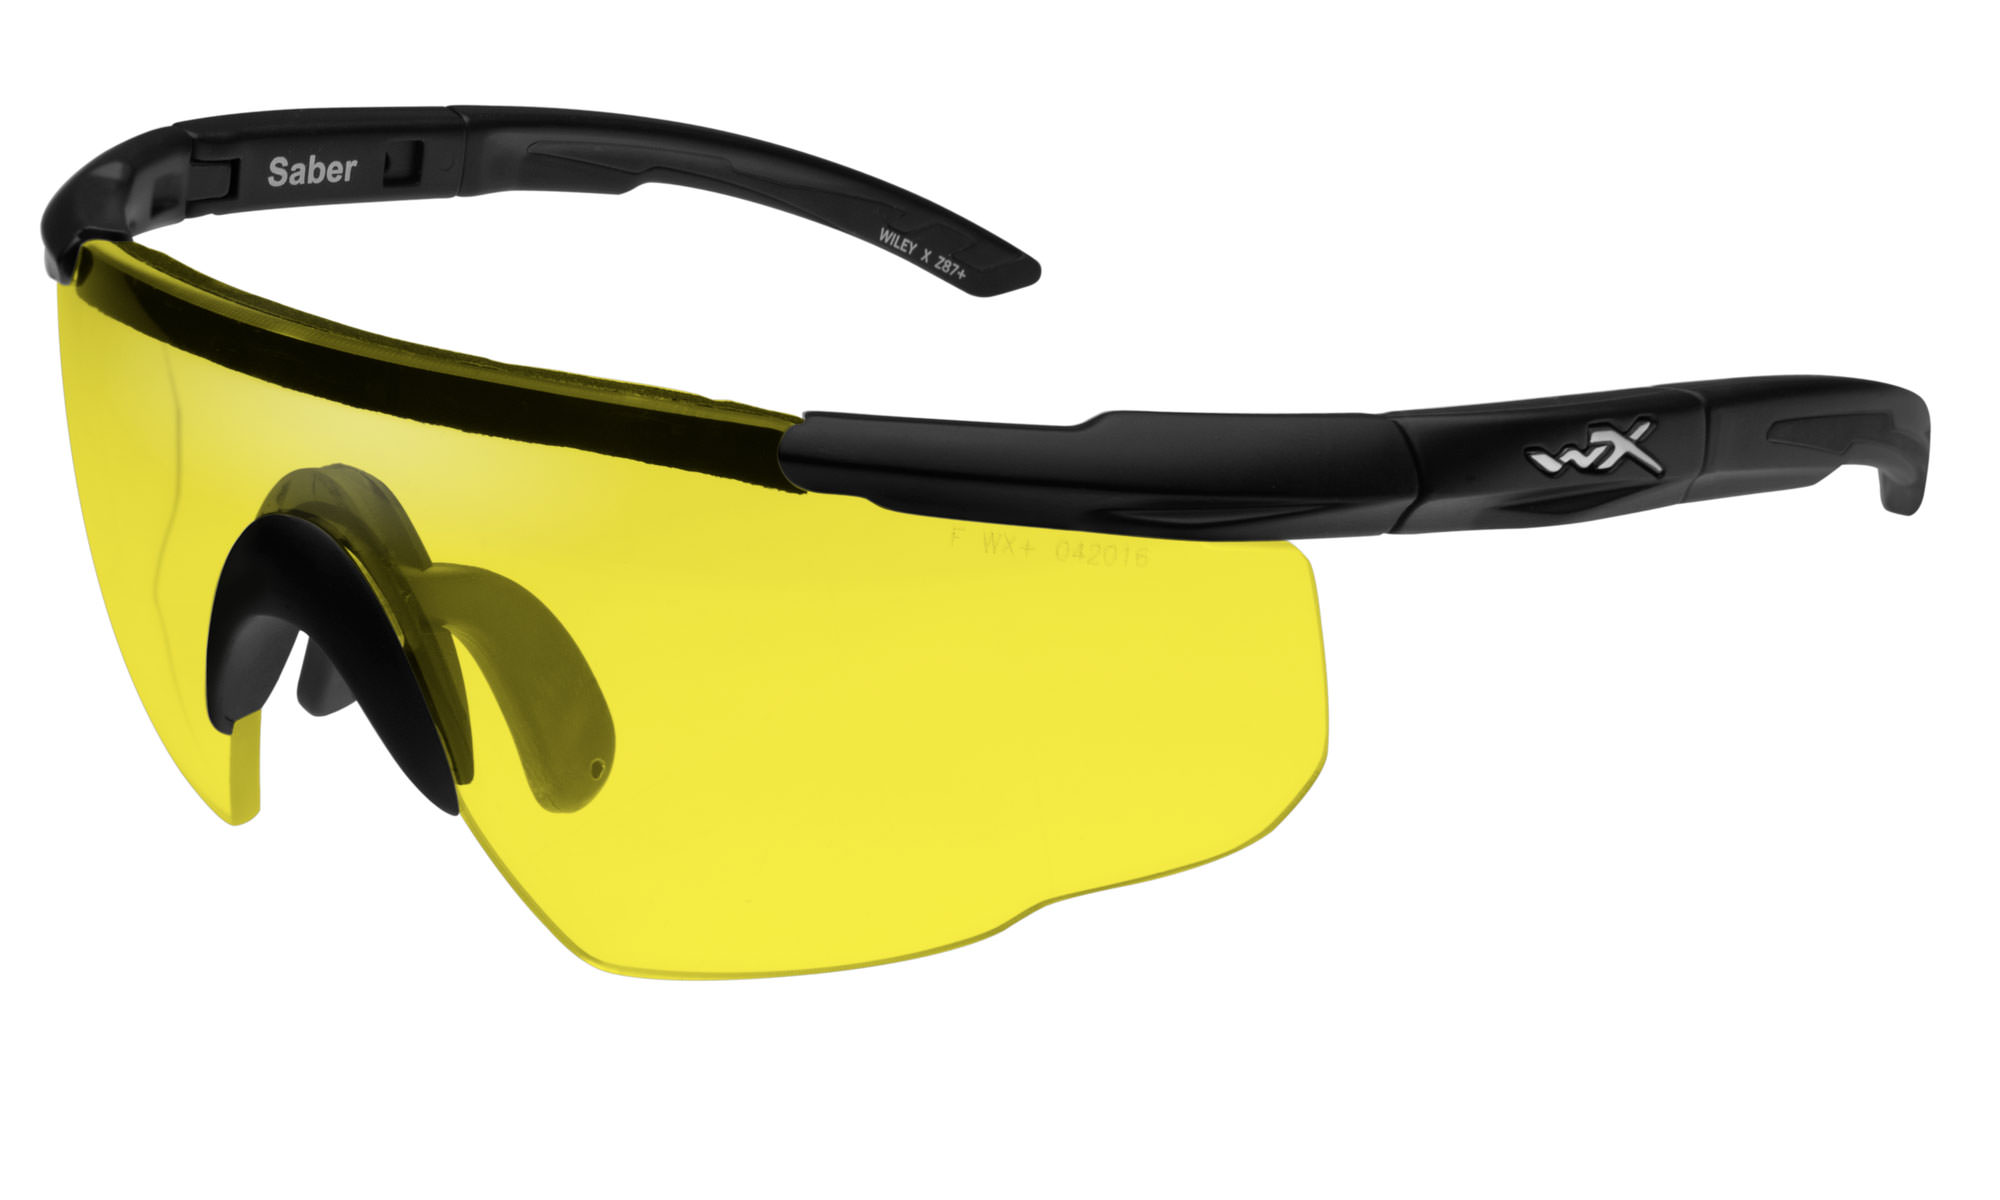 26ff6fa60e78 Wiley-X Saber Advanced Matte Black with Pale Yellow Lenses | Wiley X